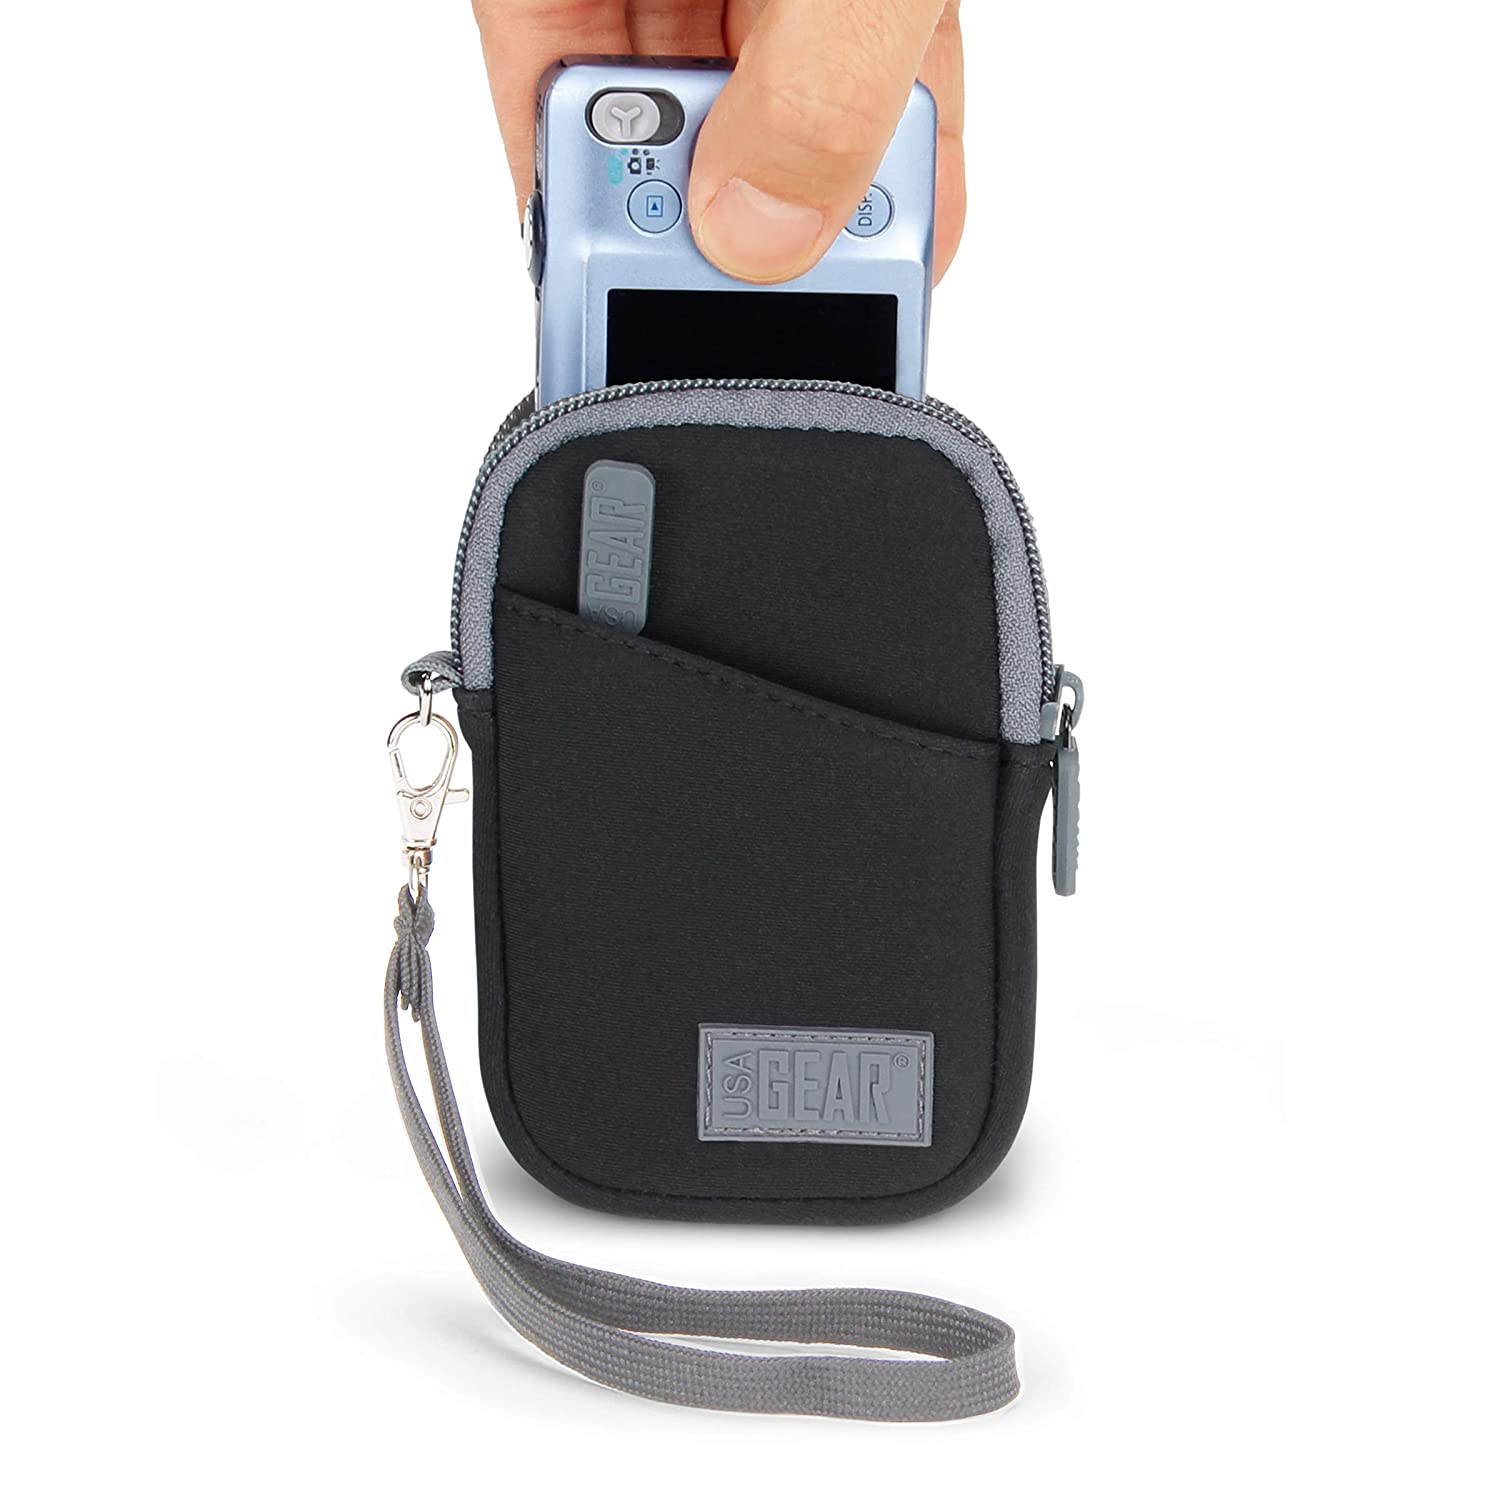 Sony USA Gear Compact Digital Camera Protective Case Sleeve Pouch with Wrist Strap and Accessory Pocket Panasonic and More Nikon Scratch and Weather Resistant Black Compatible with Canon